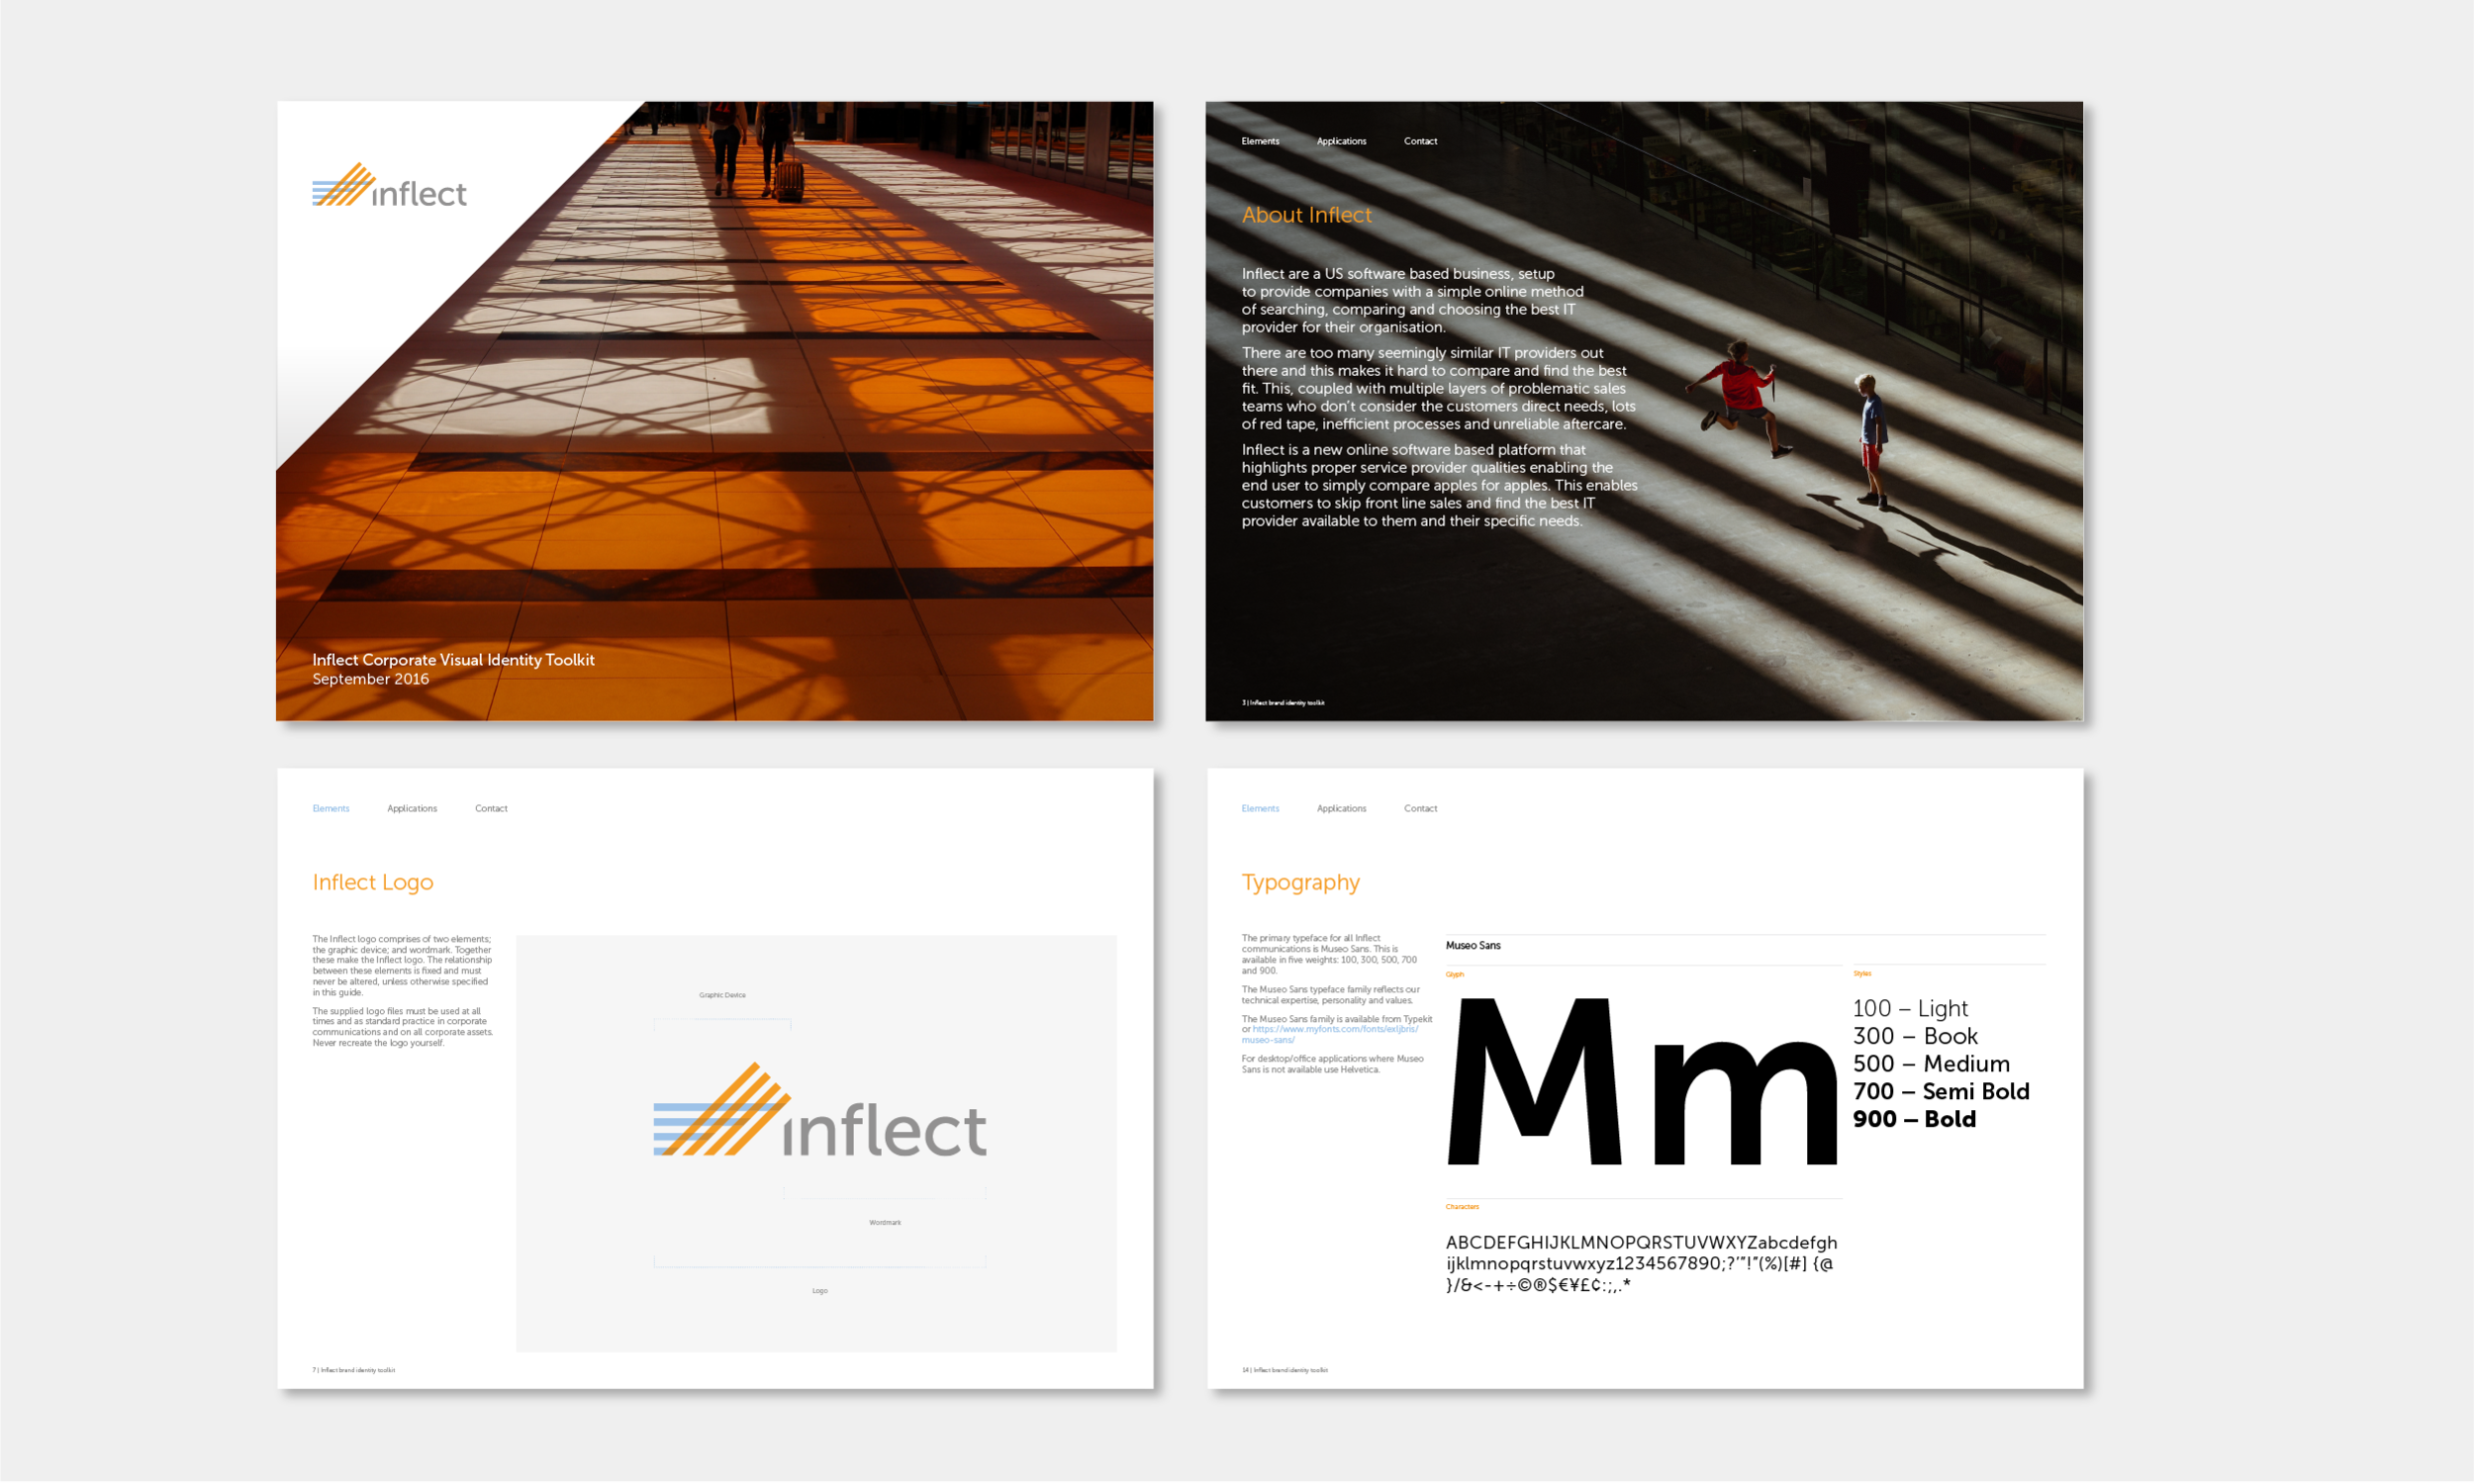 Logo Design and Brand Identity, Stationery with Branding, Kent - Inflect